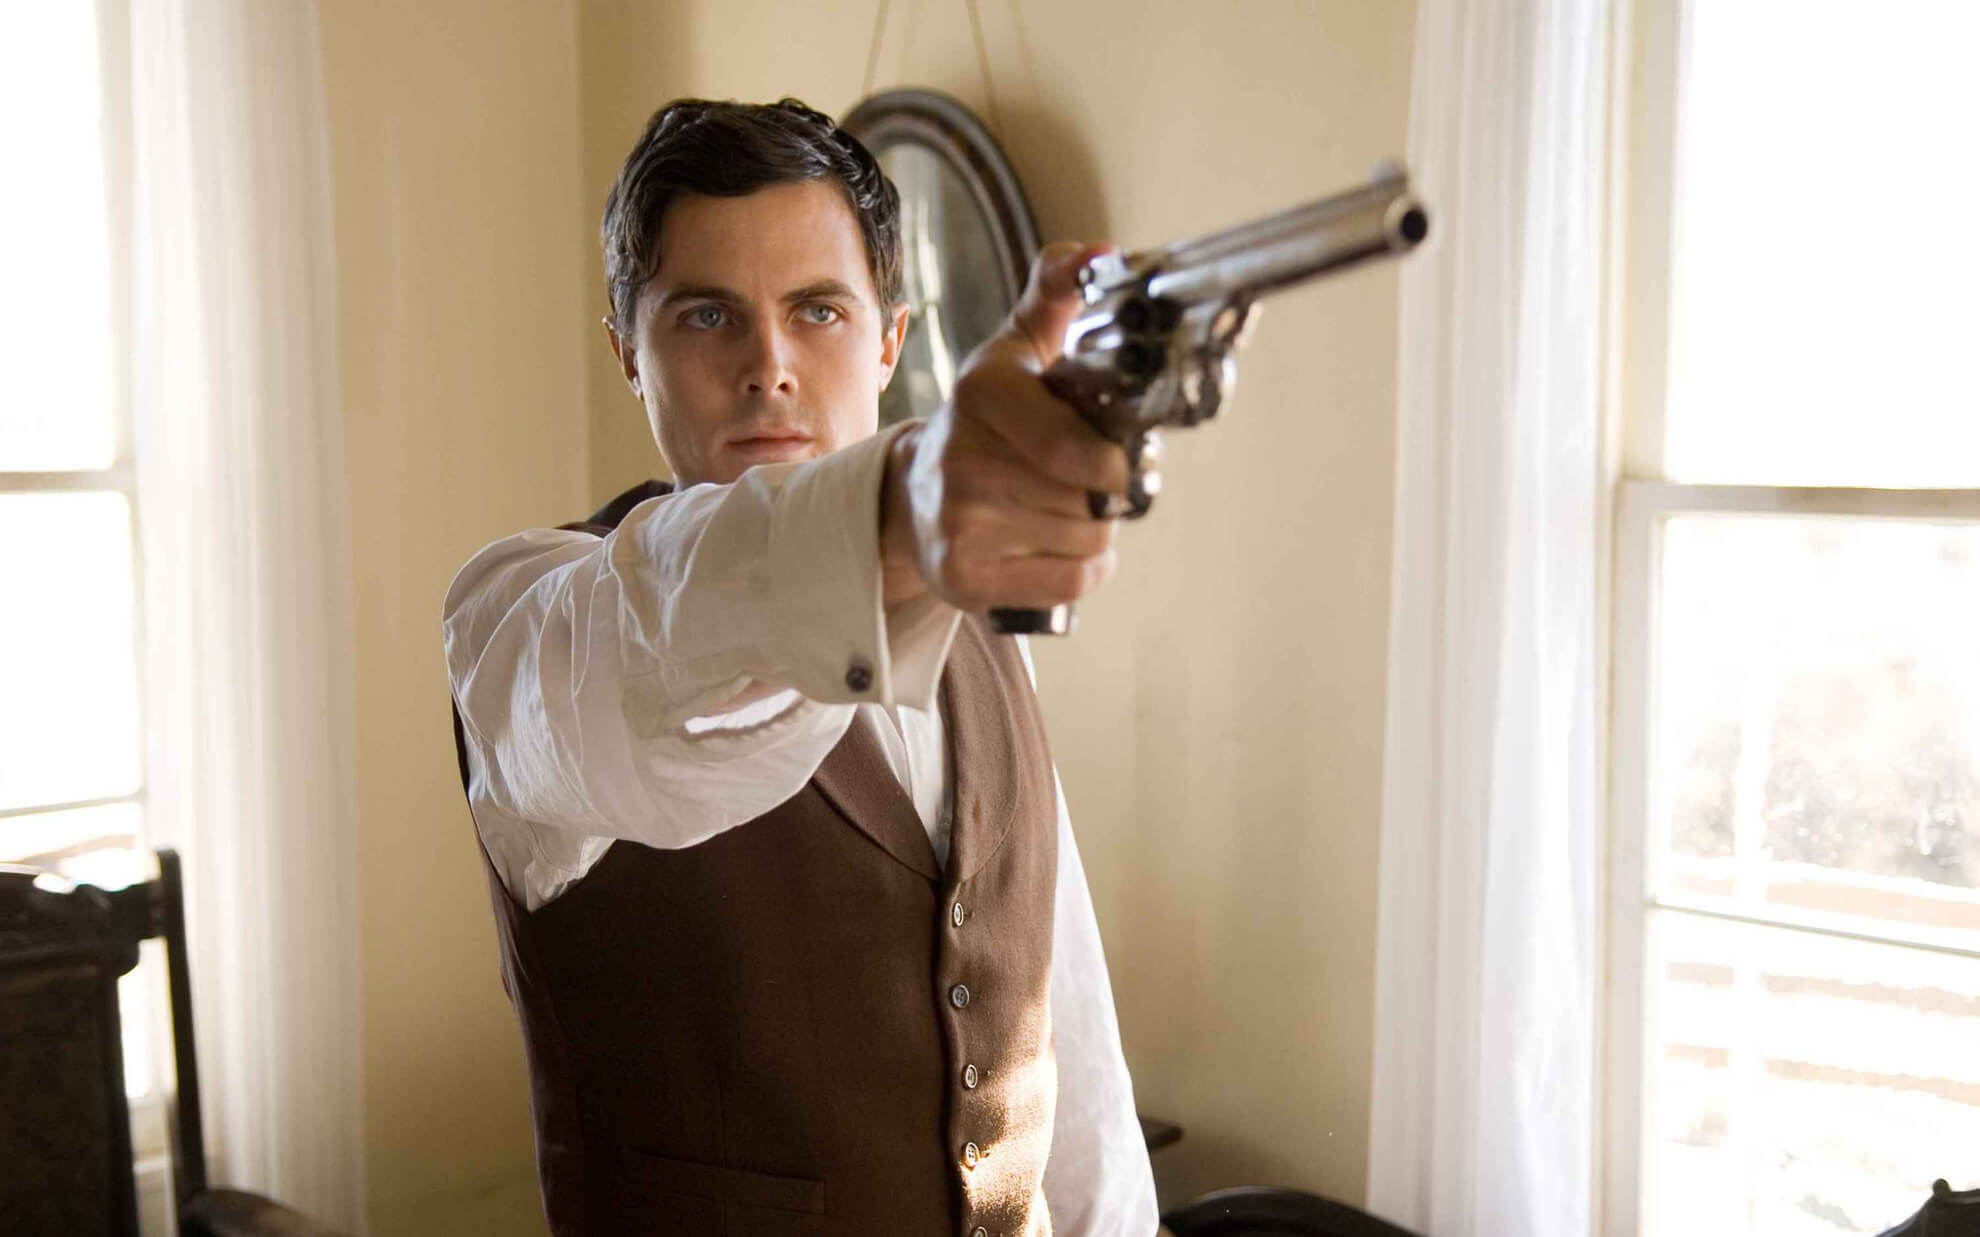 Casey Affleck drawing gun in The Assassination of Jesse James by the Coward Robert Ford (2007)